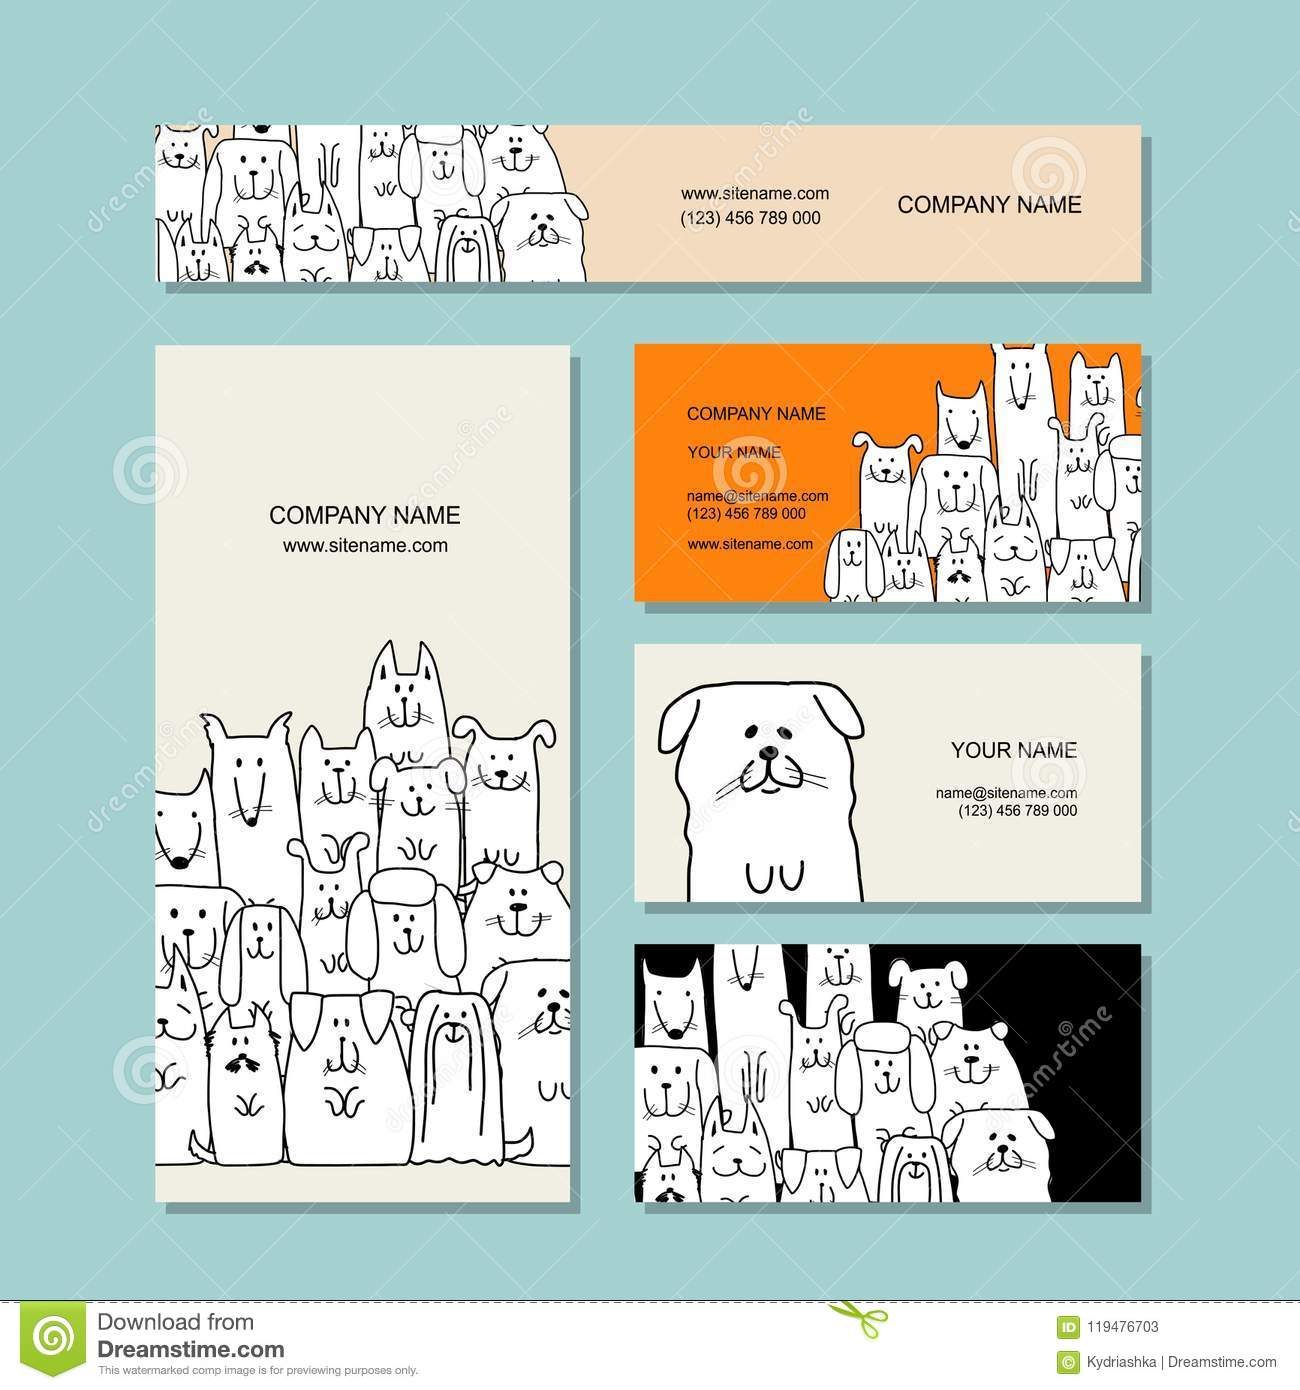 Business Cards Design, Funny Dogs Family Editorial Stock Photo ...